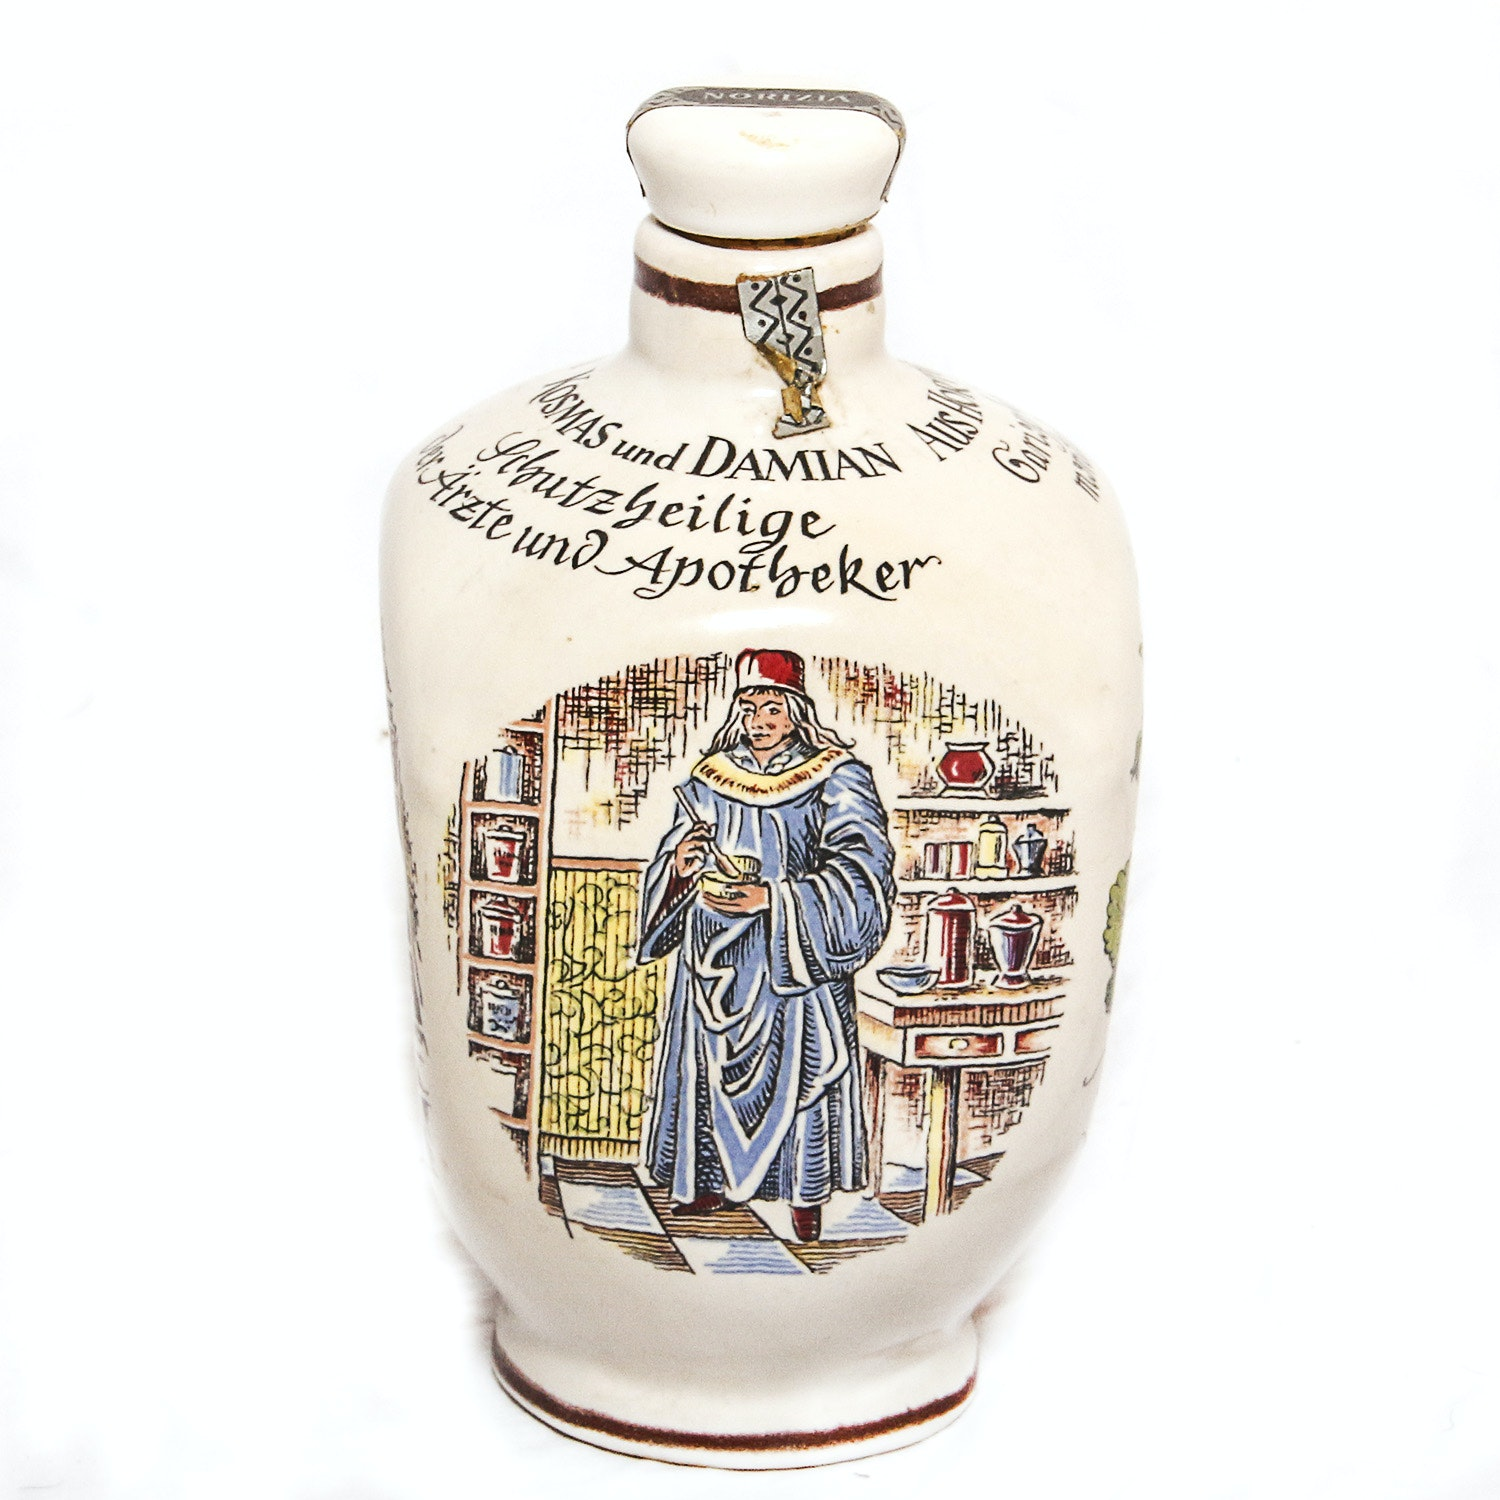 Vintage Ulmer Ceramic Norizia Wine Bottle in the Style of an Apothecary Bottle